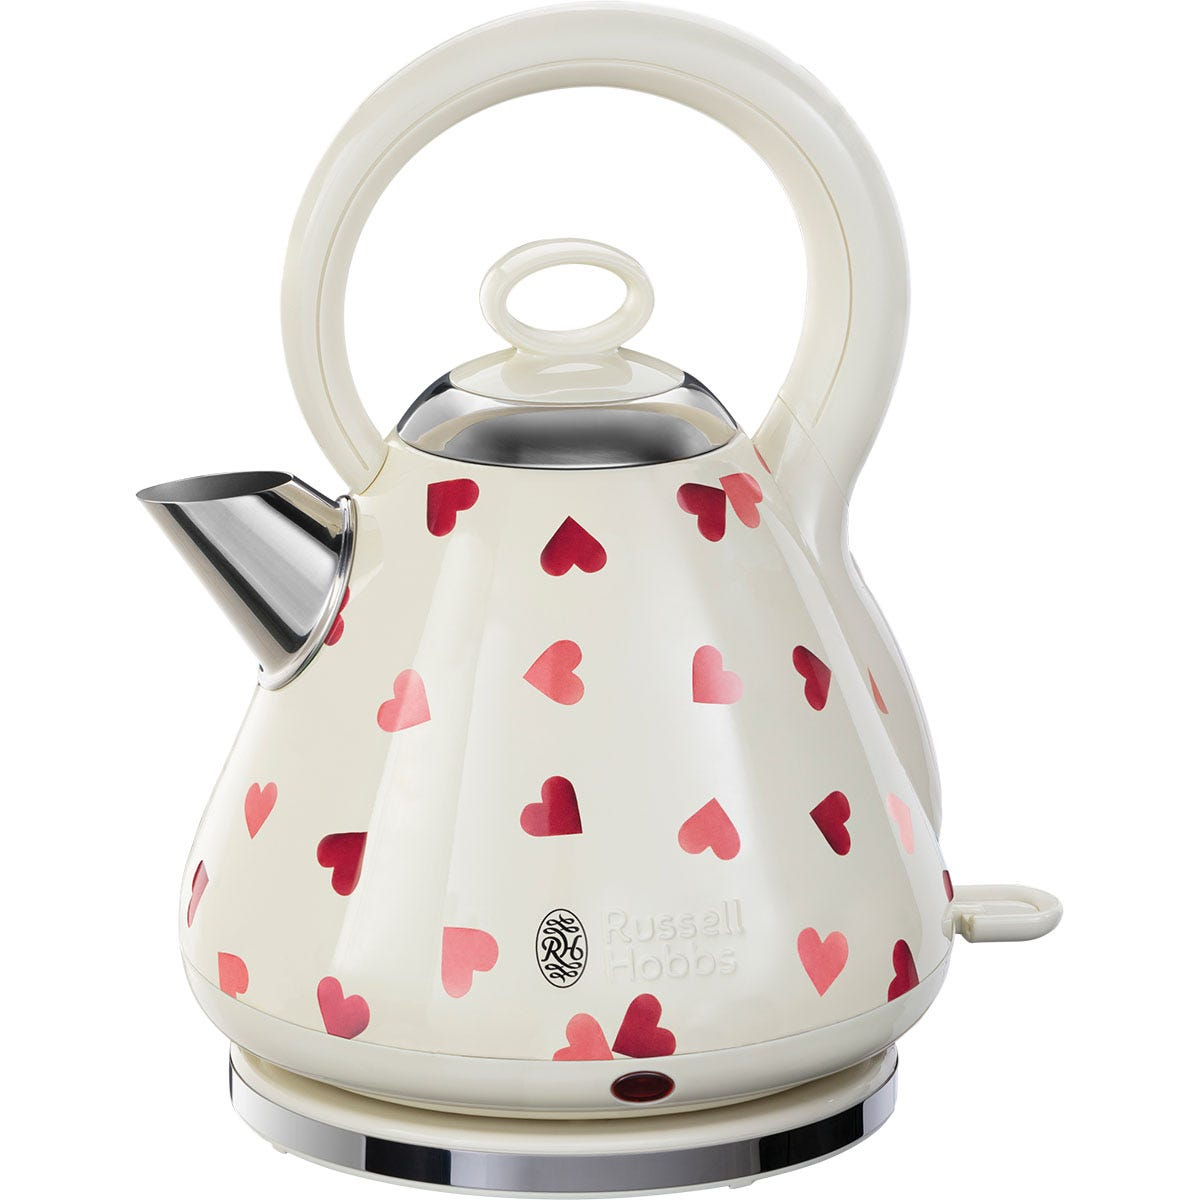 Russell Hobbs 28330 Emma Bridgewater Pink Hearts 1.7L Kettle - Cream and Pink